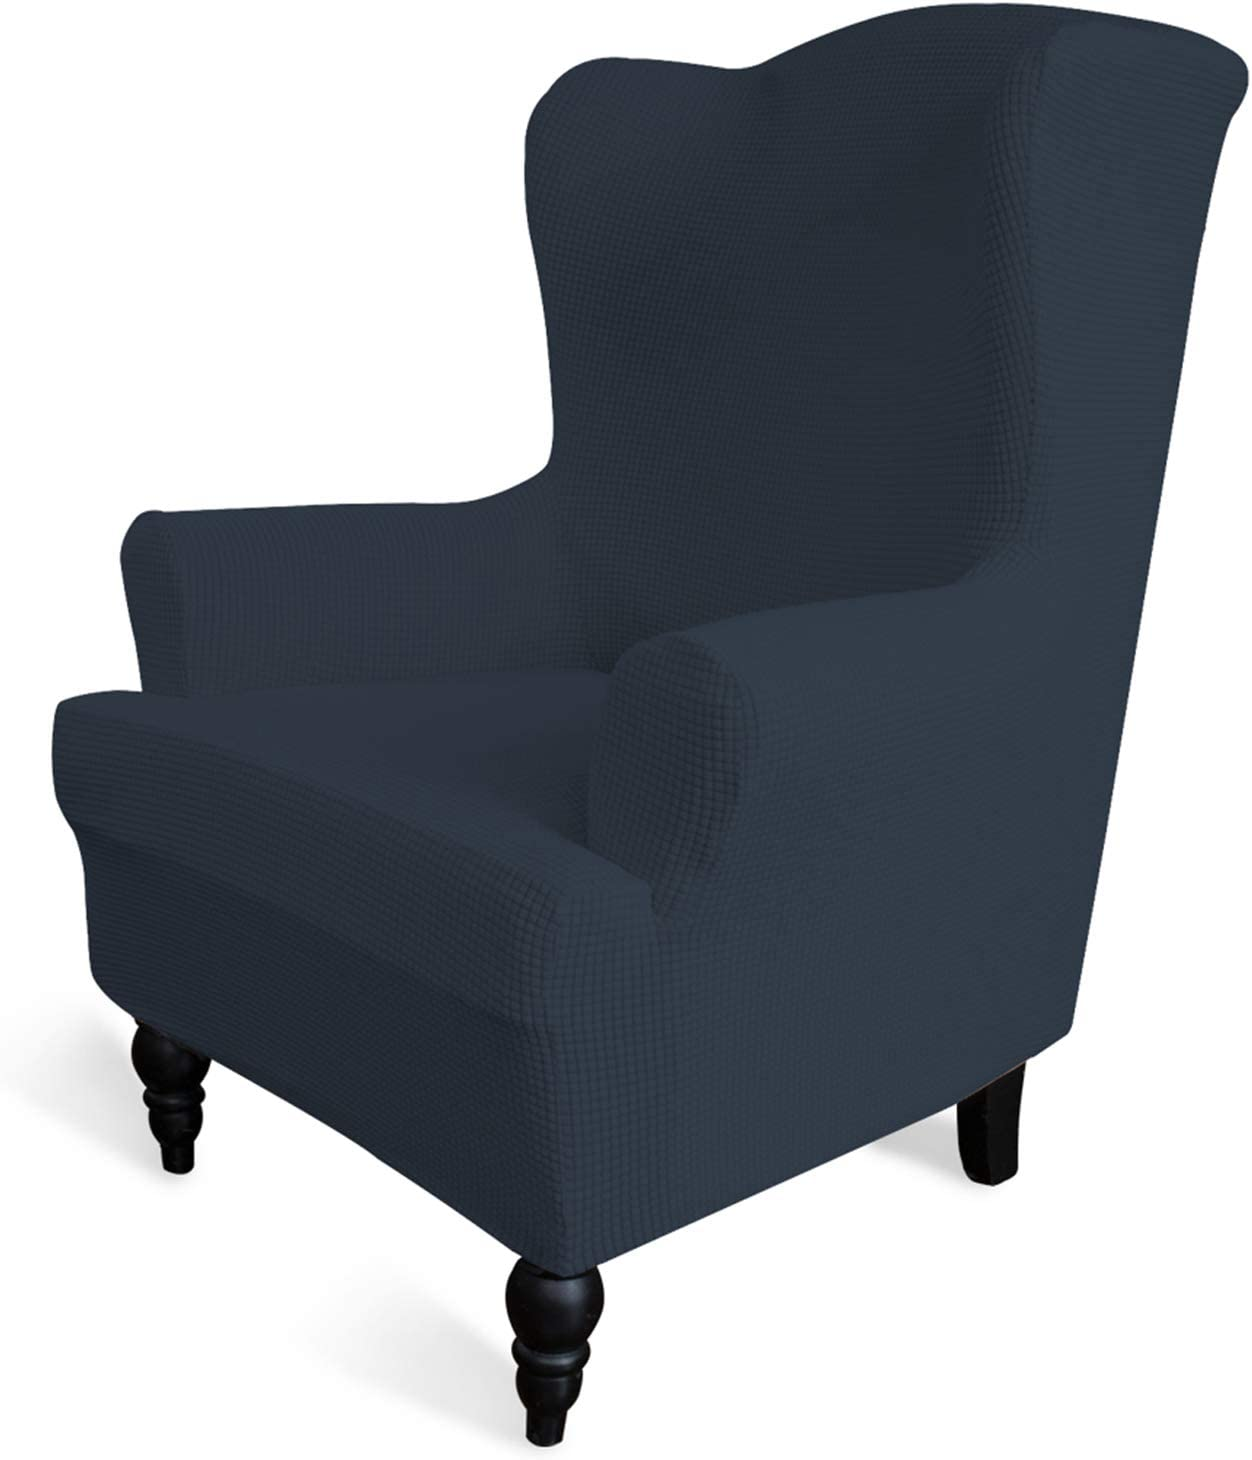 Easy-Going Stretch Wingback Chair Sofa Slipcover 1-Piece Sofa Cover Furniture Protector Couch Soft with Elastic Bottom Spandex Jacquard Fabric Small Checks(Wing Chair,Dark Blue)